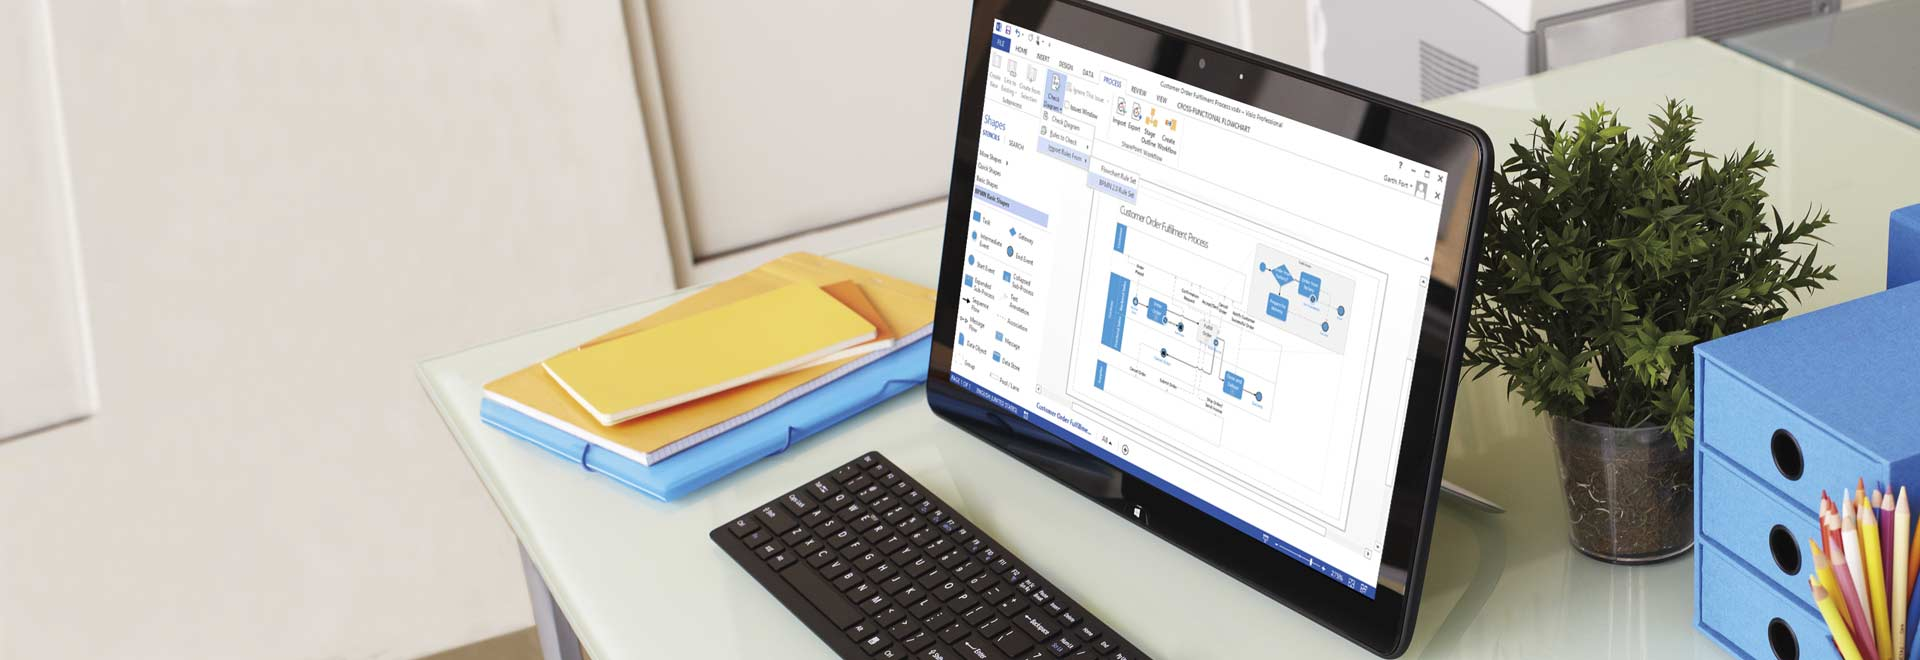 Flow Chart And Diagram Maker Microsoft Visio Professional Logic Tool A Desk With Tablet Computer Displaying Process In 2019